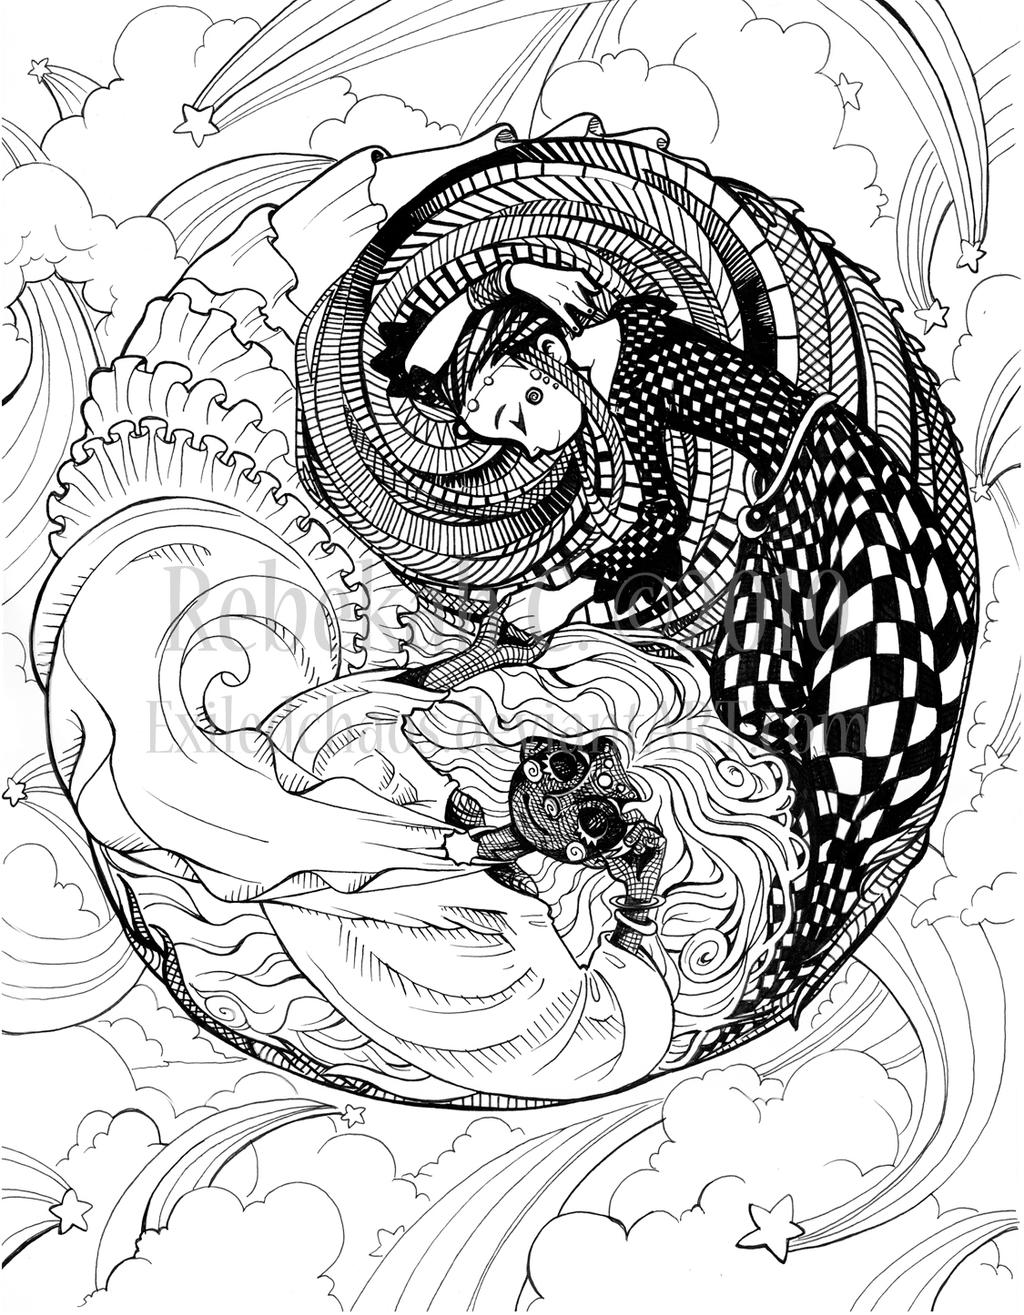 Coloring Pages Yin Yang : Herron coloring book yin yang by exiledchaos on deviantart